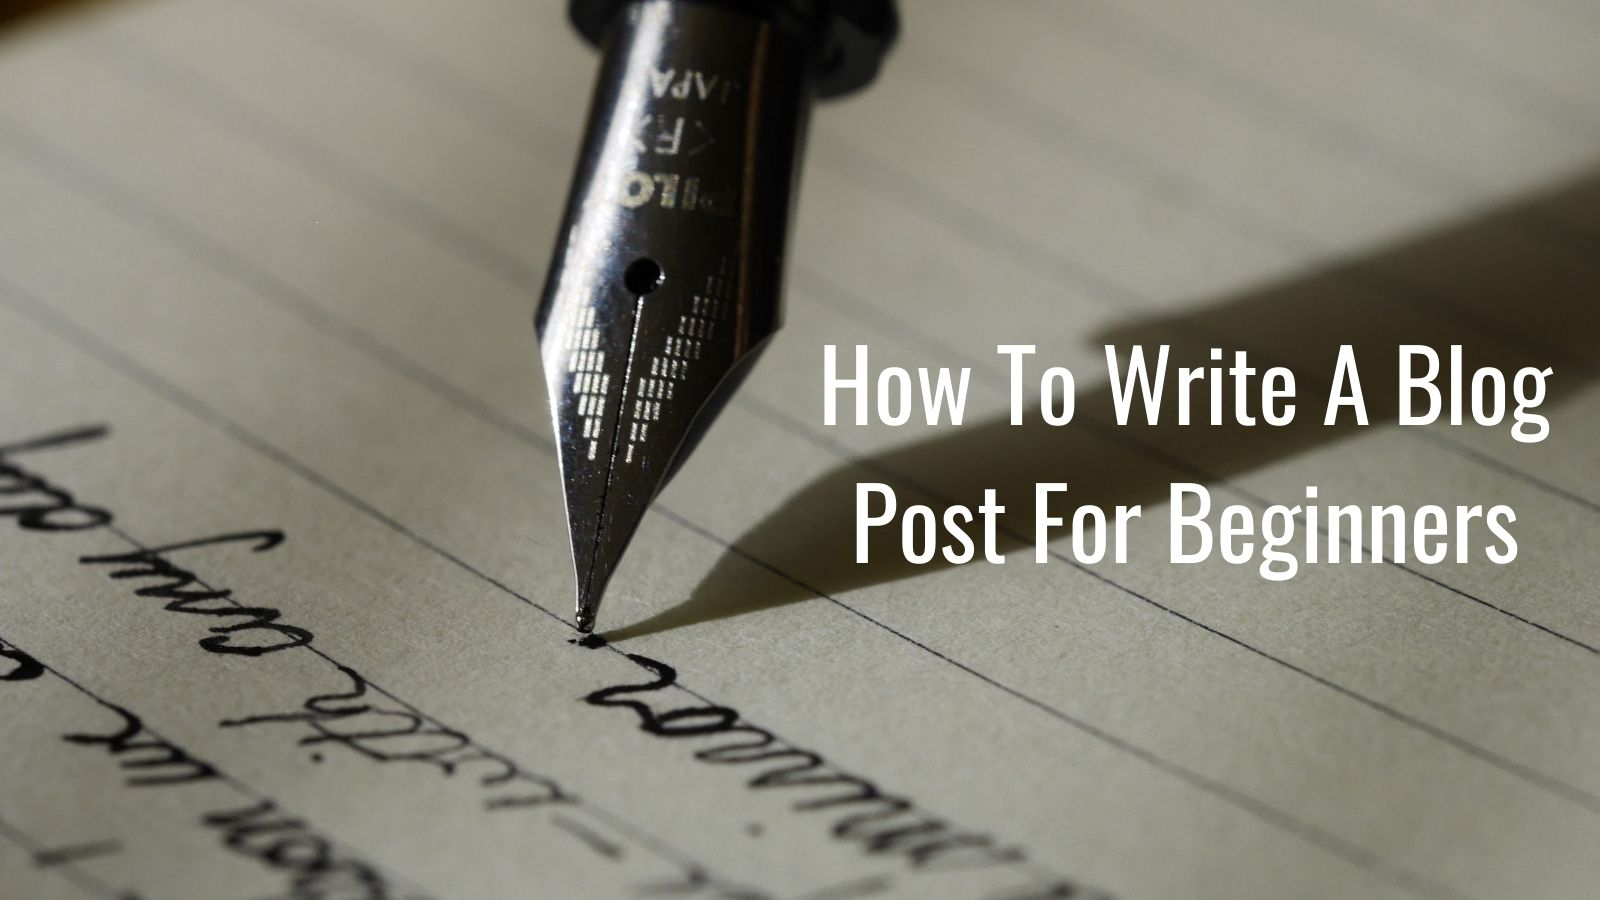 How To Write A Blog Post For Beginners - Pen and Ink